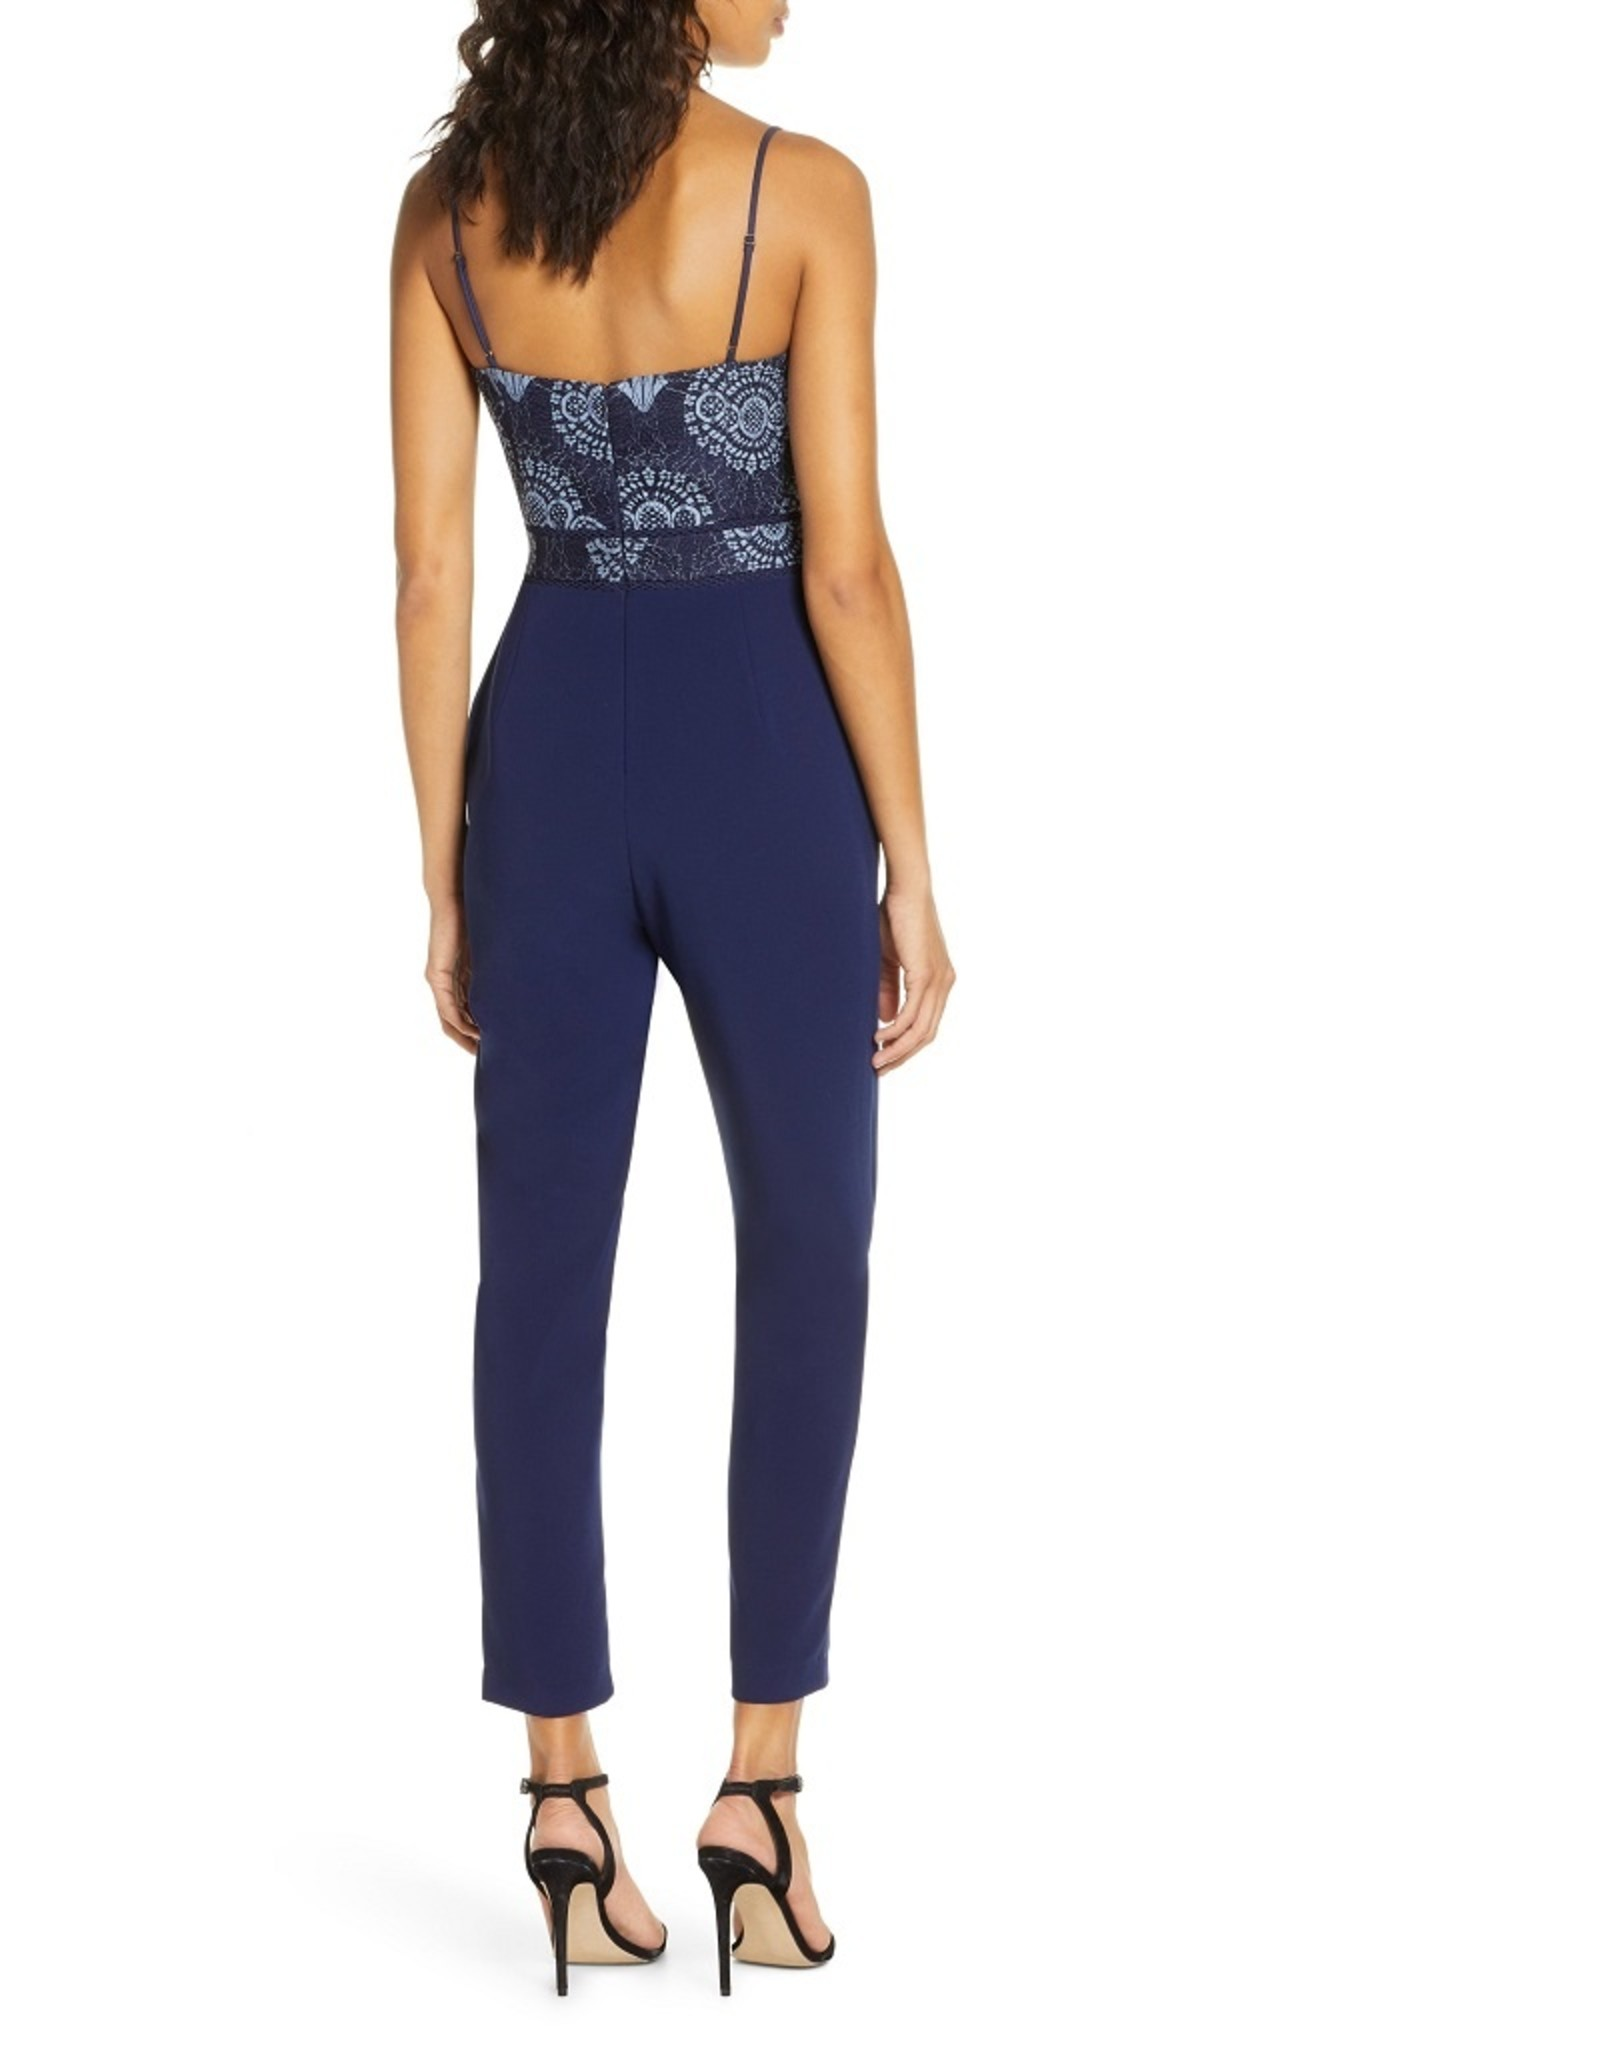 Adelyn Rae Aeris Lace Bodice Crepe Jumpsuit in Navy